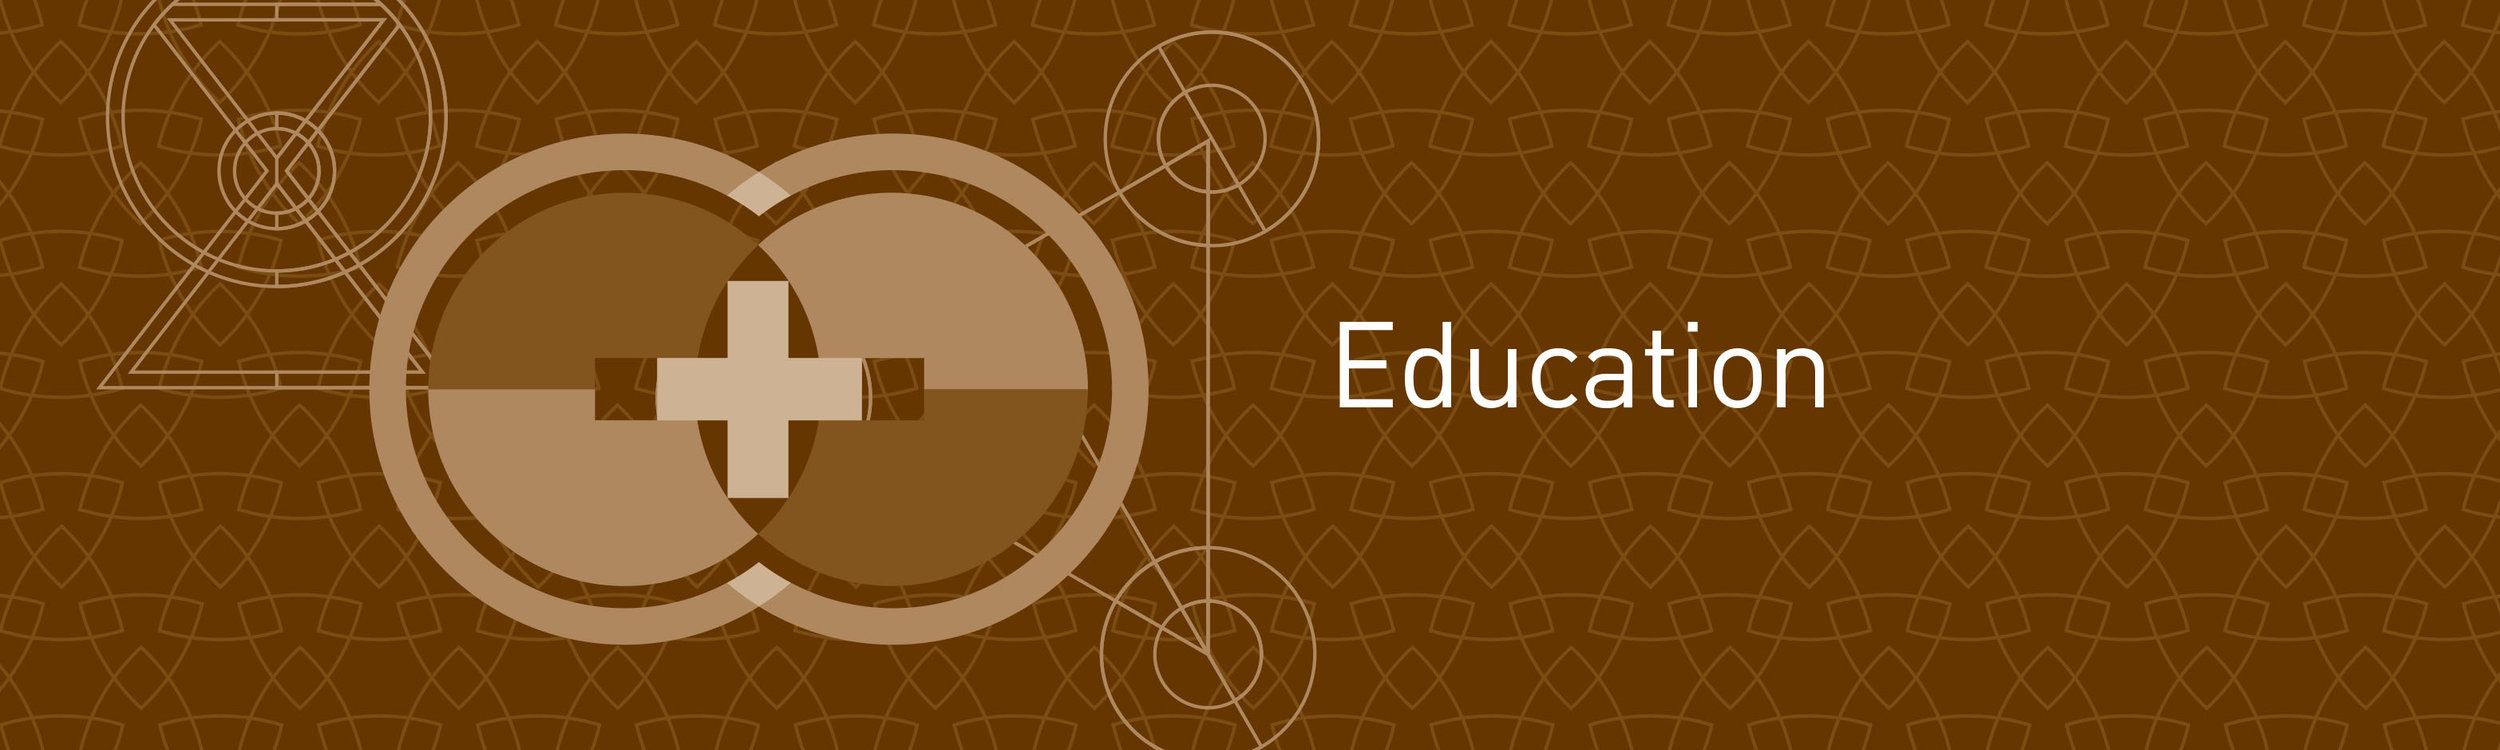 Section for educational resources.